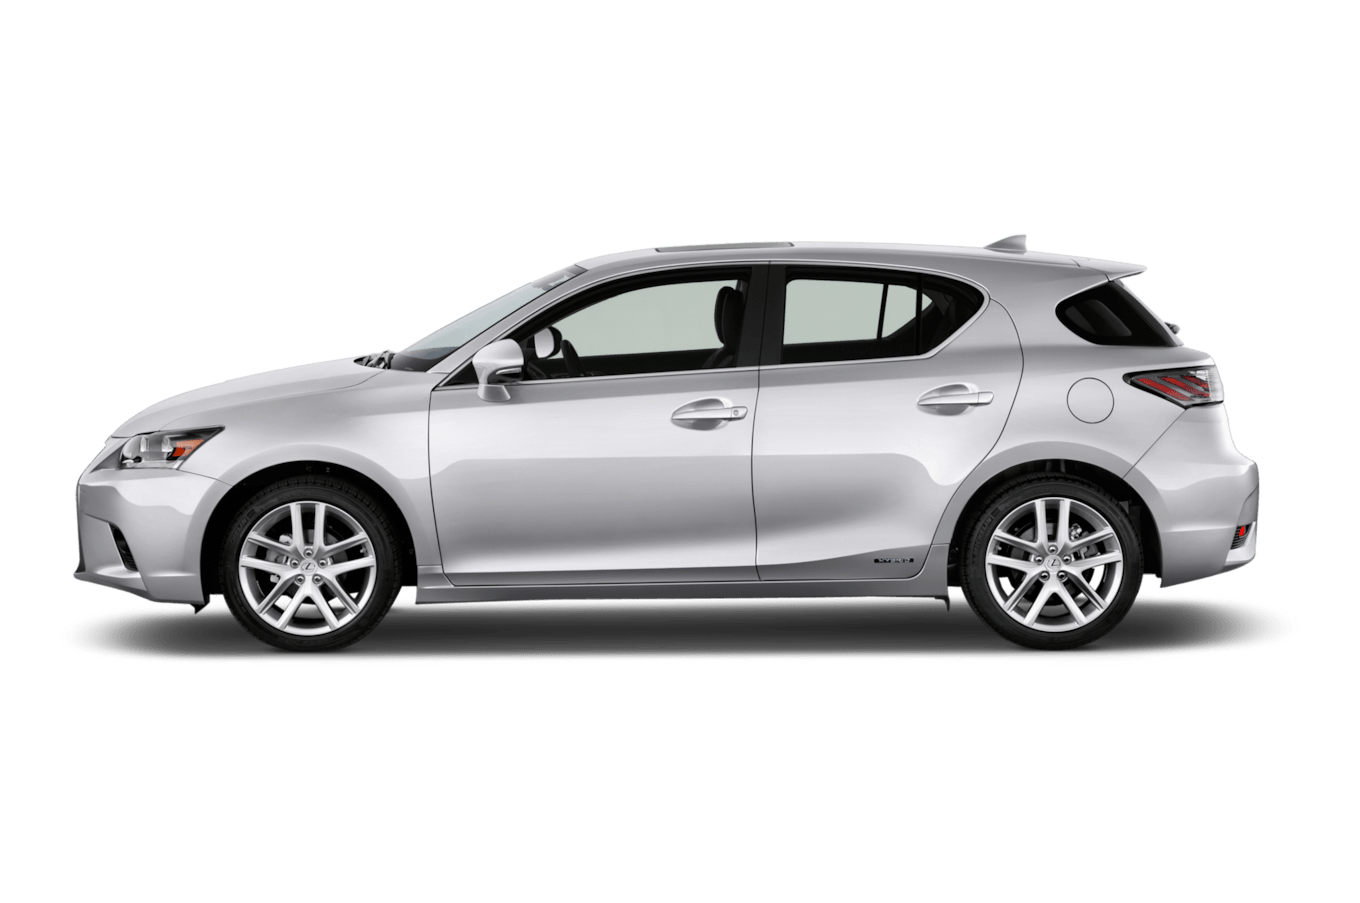 2017 Lexus CT 200h Reviews And Rating Motortrend